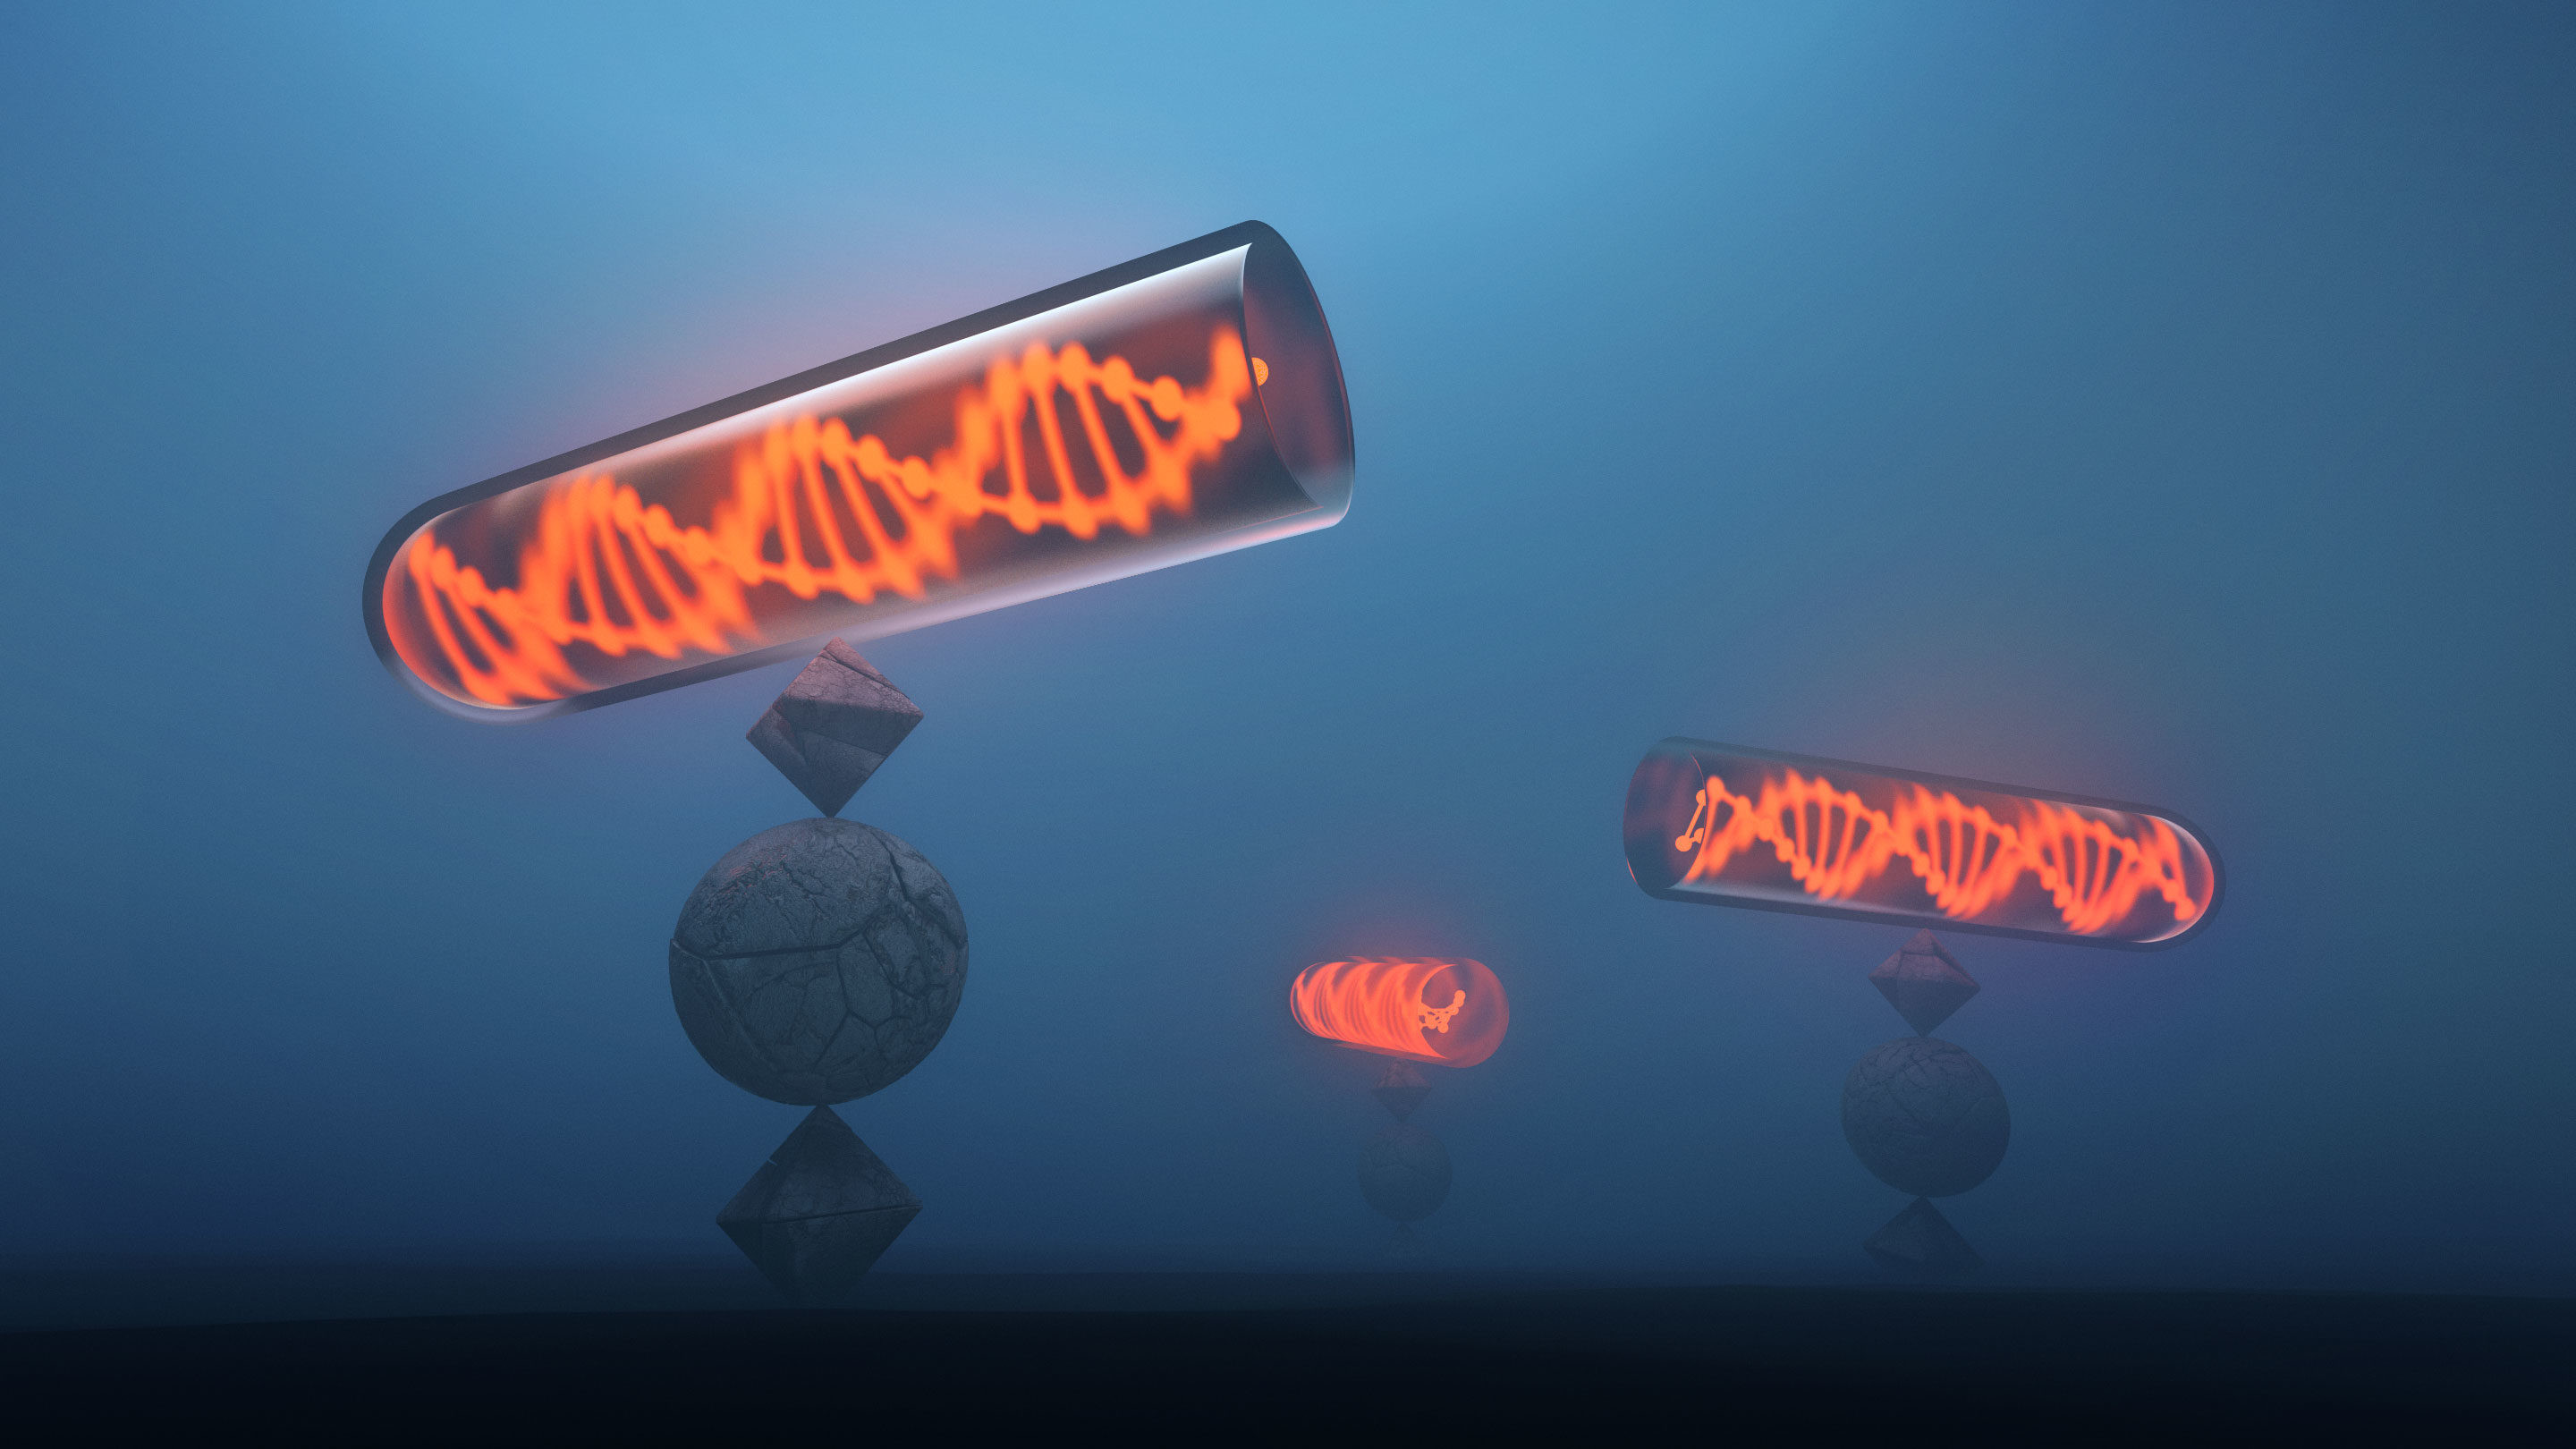 New Turmoil Over Predicting the Effects of Genes  Read the article: https://bit.ly/2DAALPt